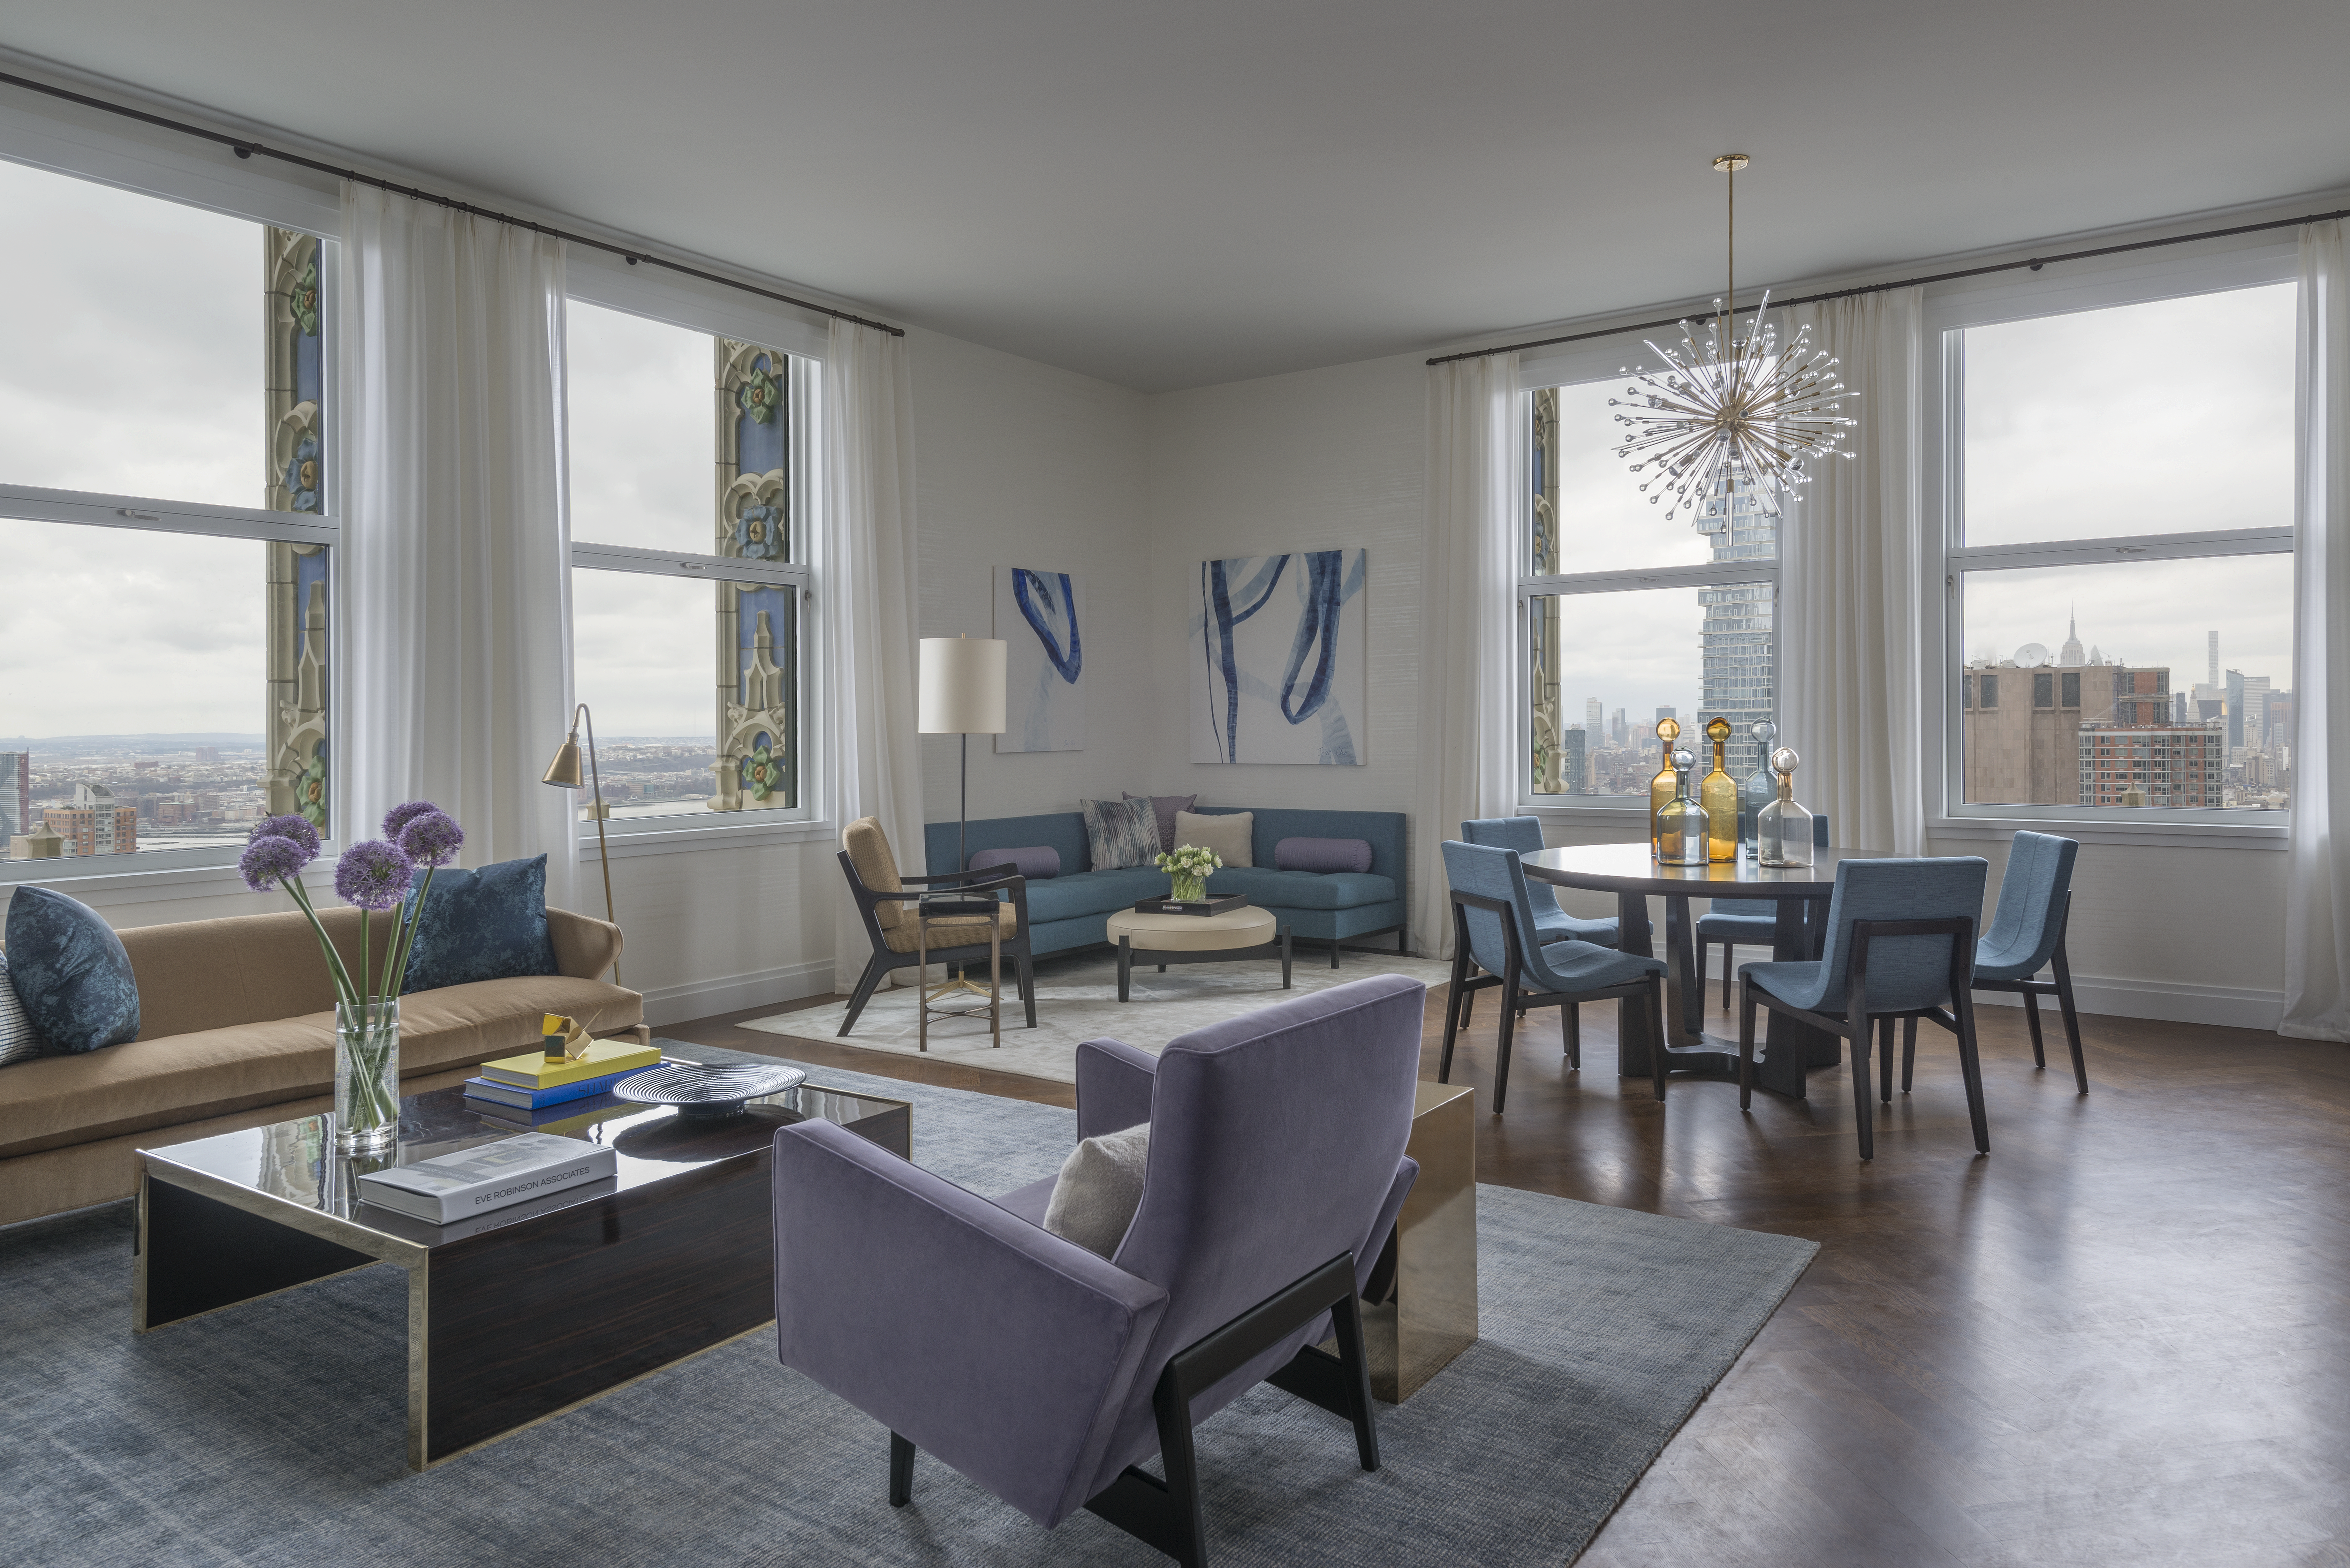 NYC Apartment Living Room, Dining Room, Mixed Seating Options,sputnik  Chandelier